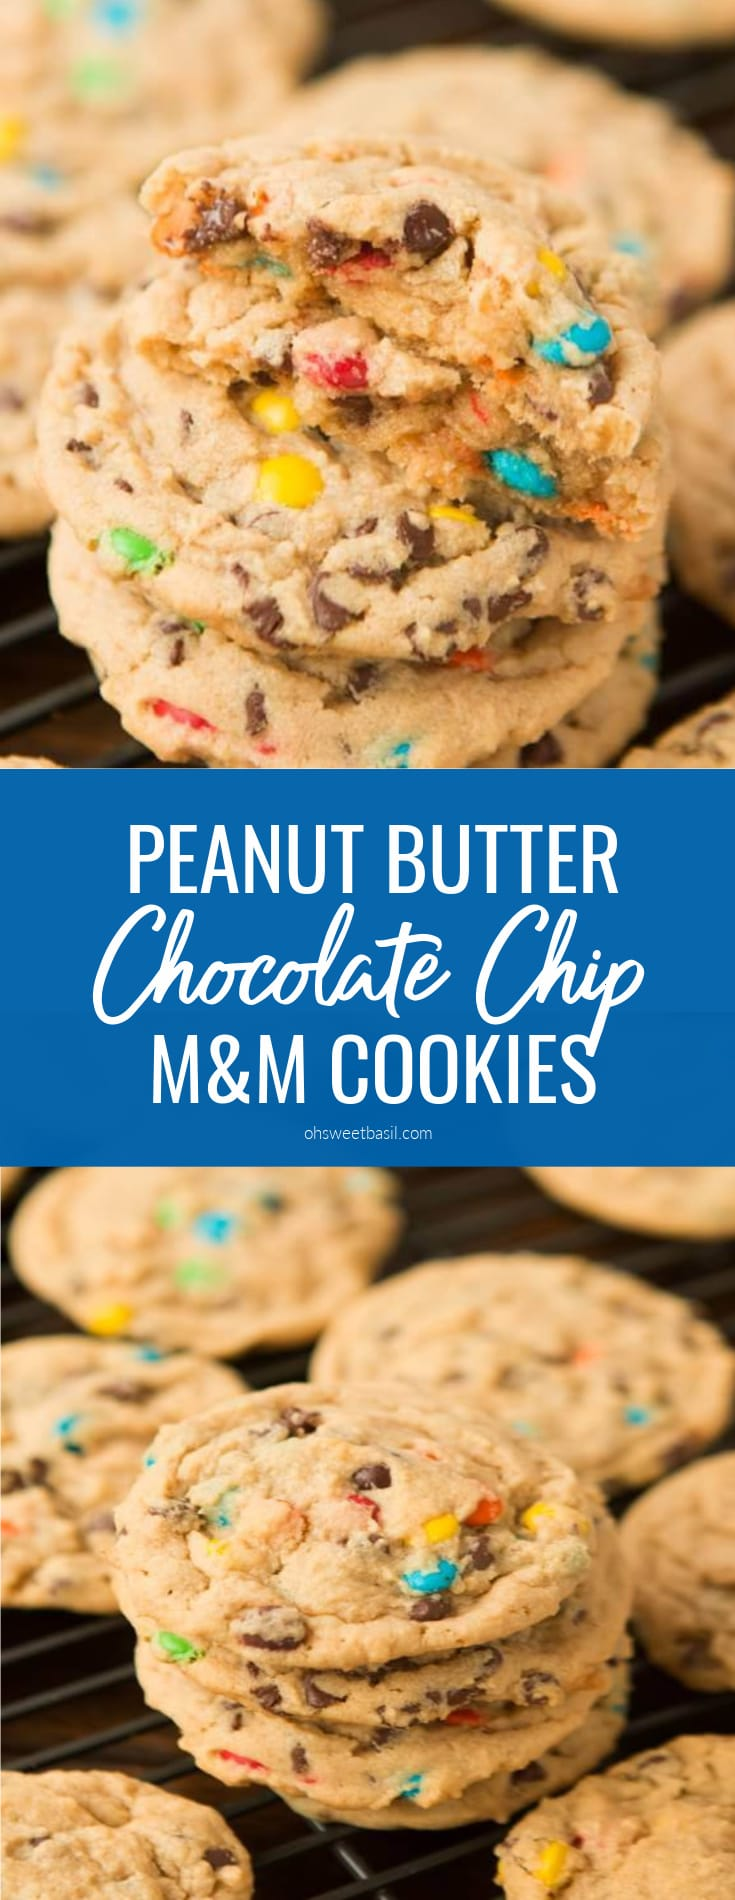 A stack of peanut butter M&M Cookies